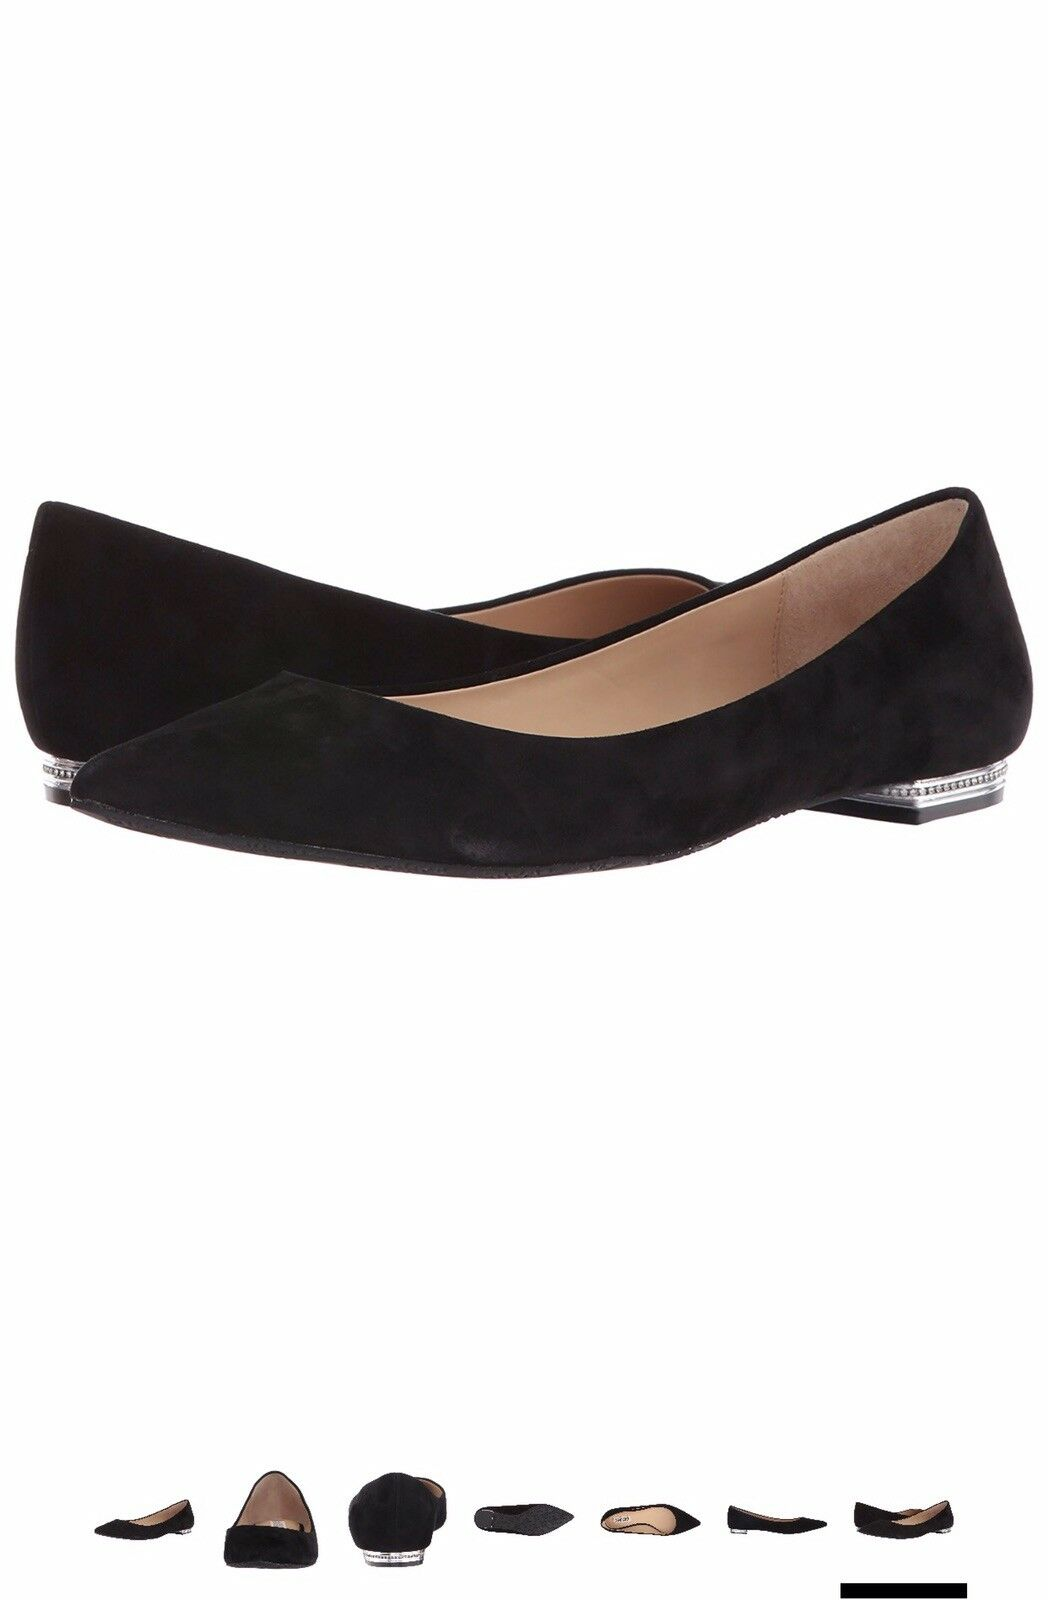 Badgley Mischka Guardian Pointed Toe Flat Size 7.5 NWT